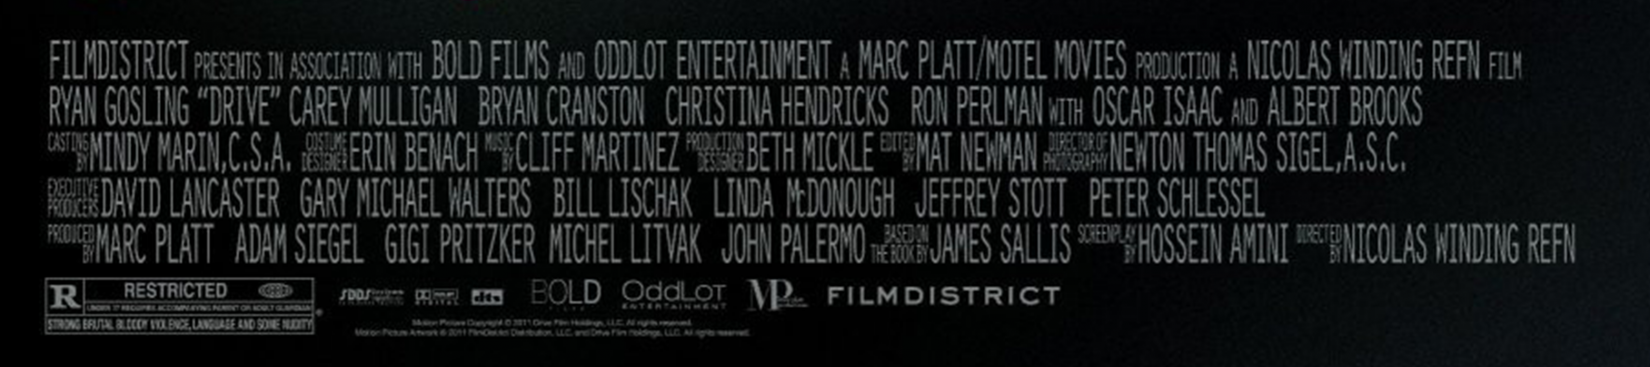 Credits on movie posters